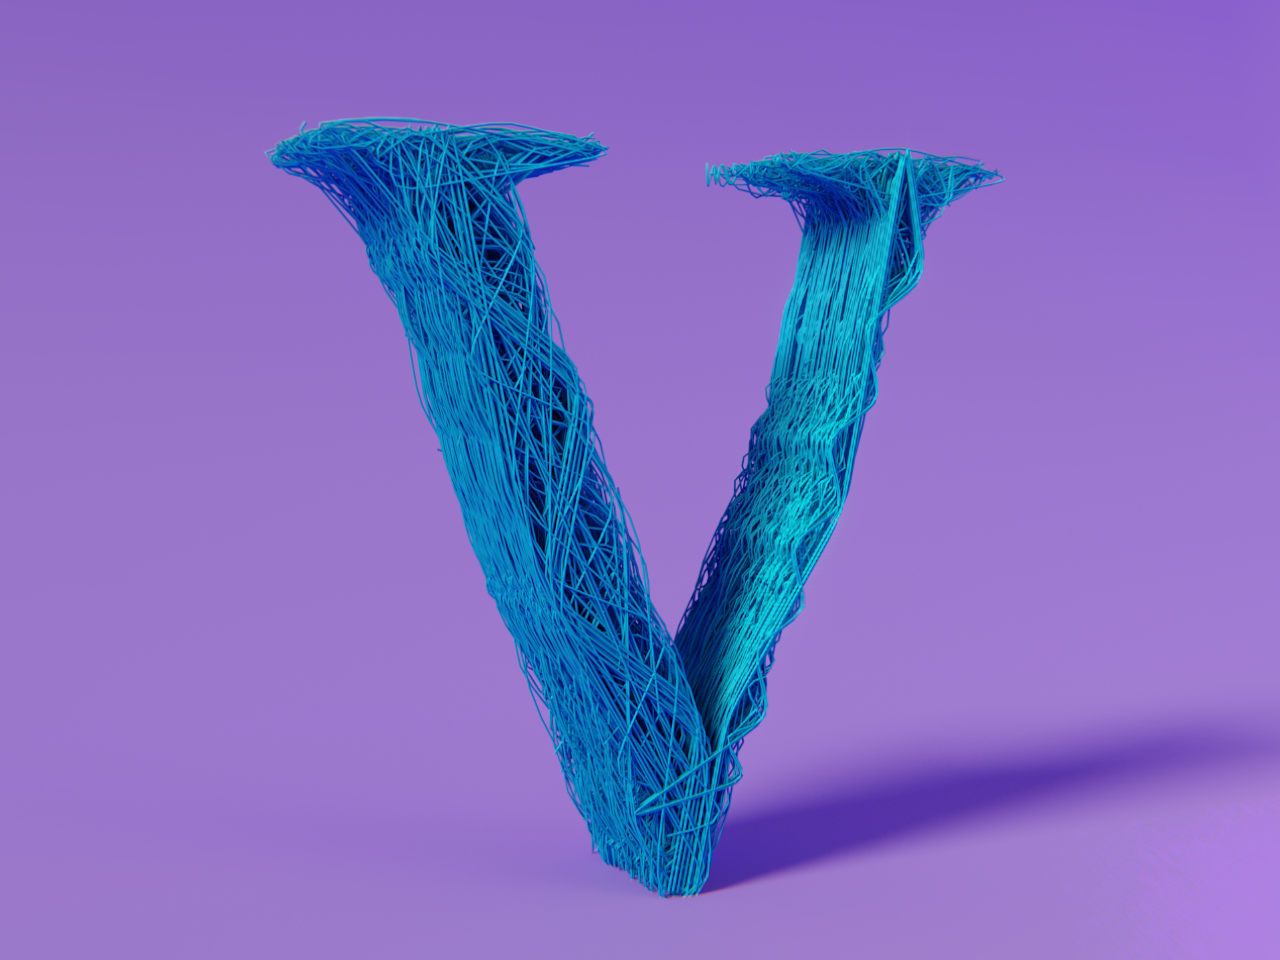 V - 36 Days of Type procedural shine abstract design 36 days of type type cycles blender 3d